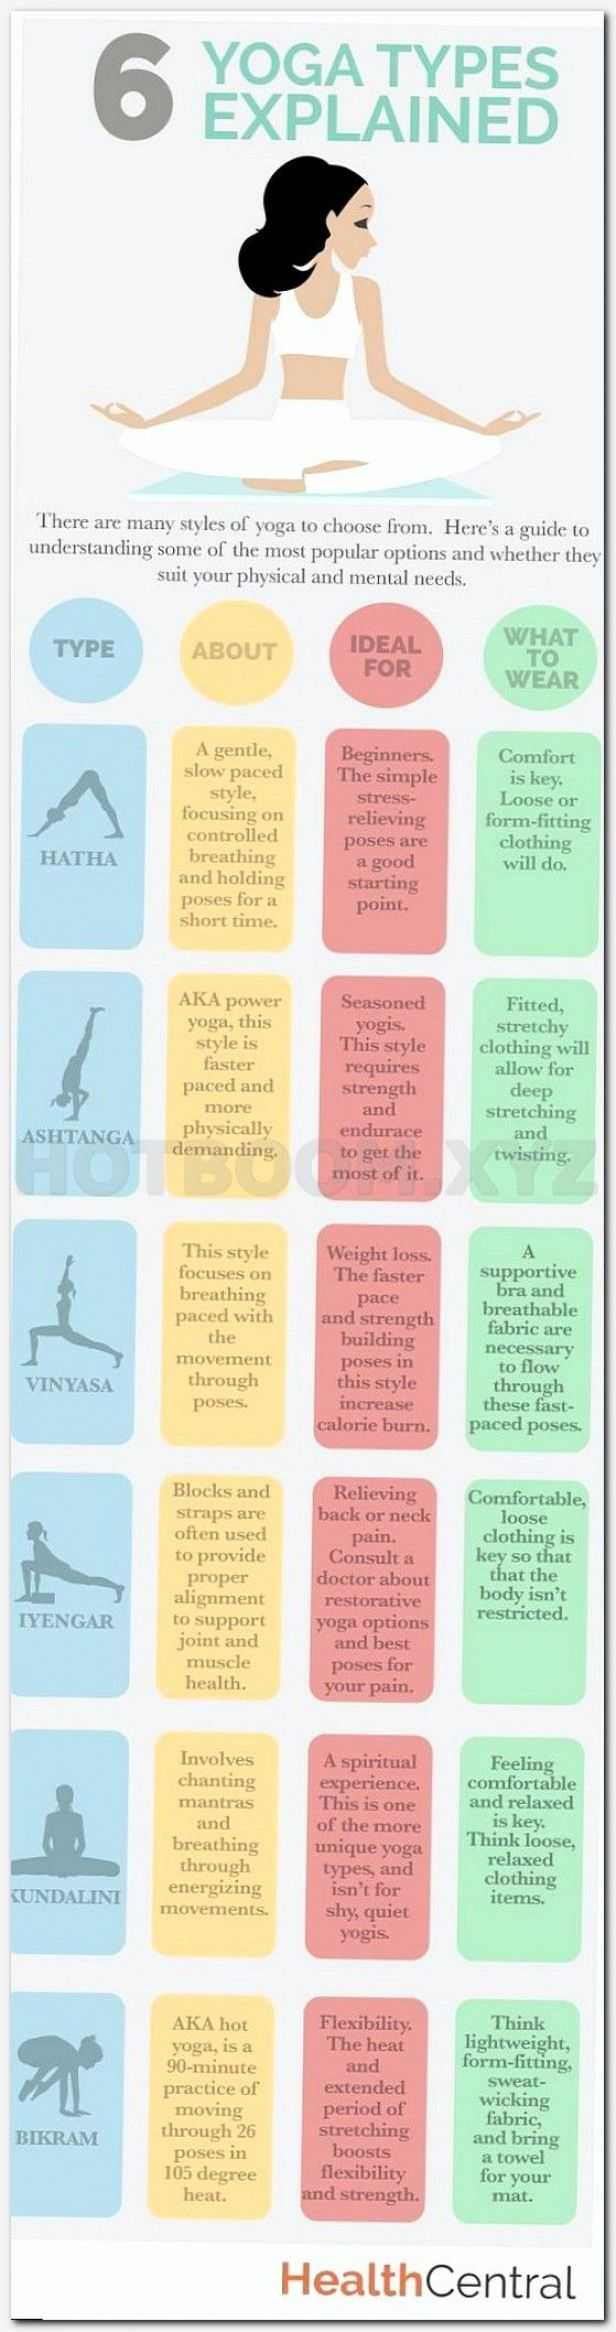 6 Types Yoga Explained